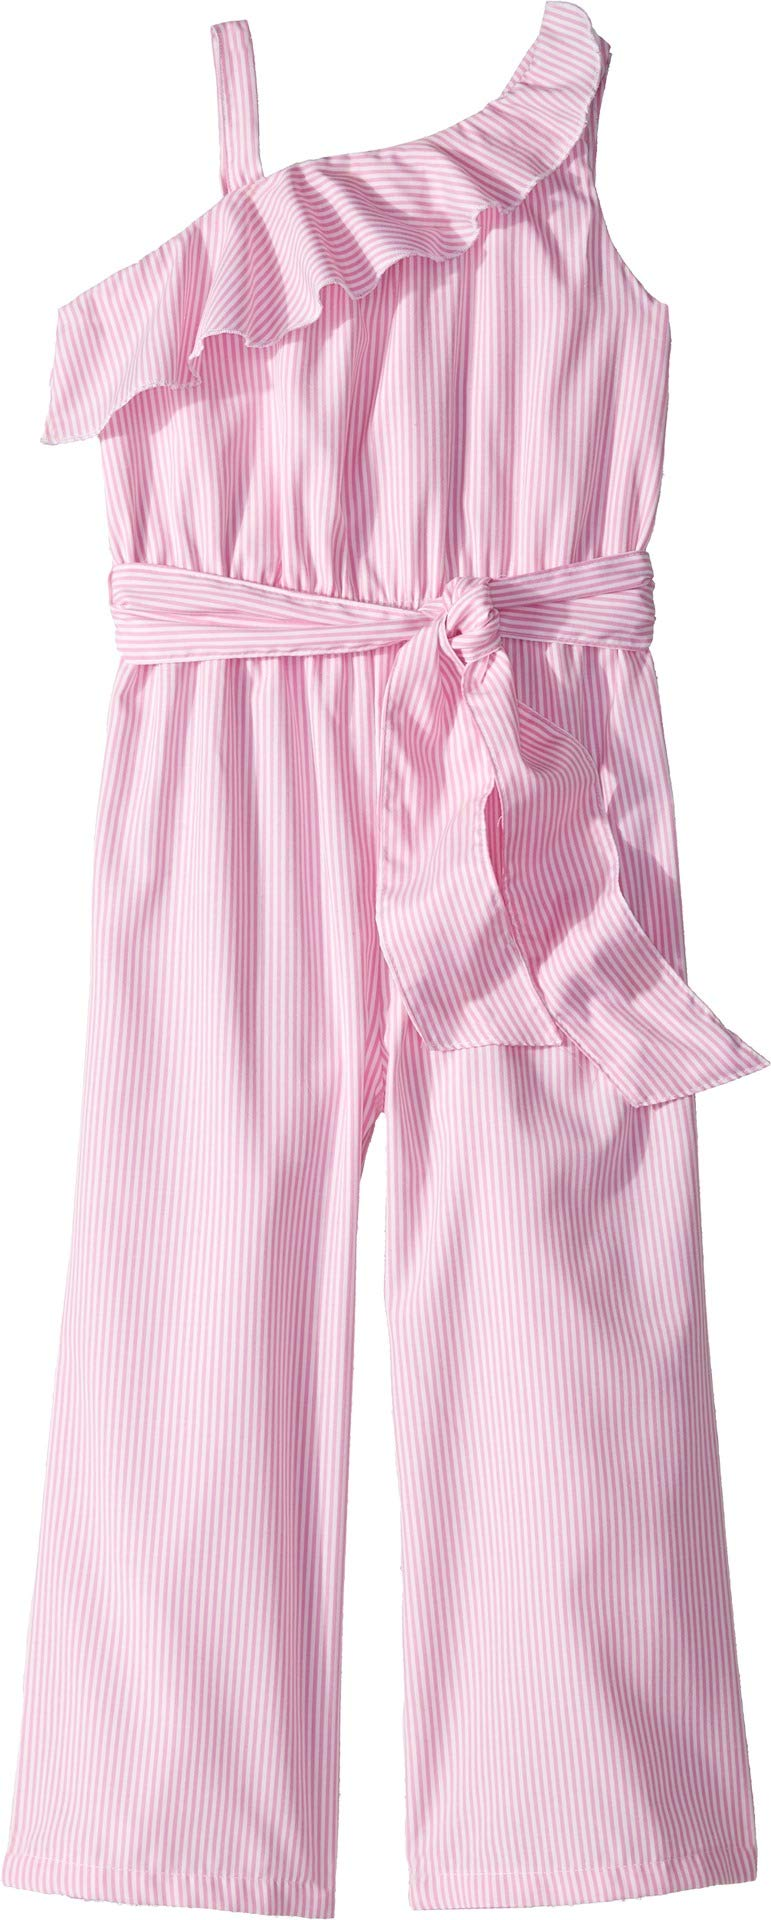 HABITUAL girl Baby Girl's Thalia Jumpsuit with Tie (Toddler/Little Kids) Light Pink 4/5 (Toddler/Little Kids)